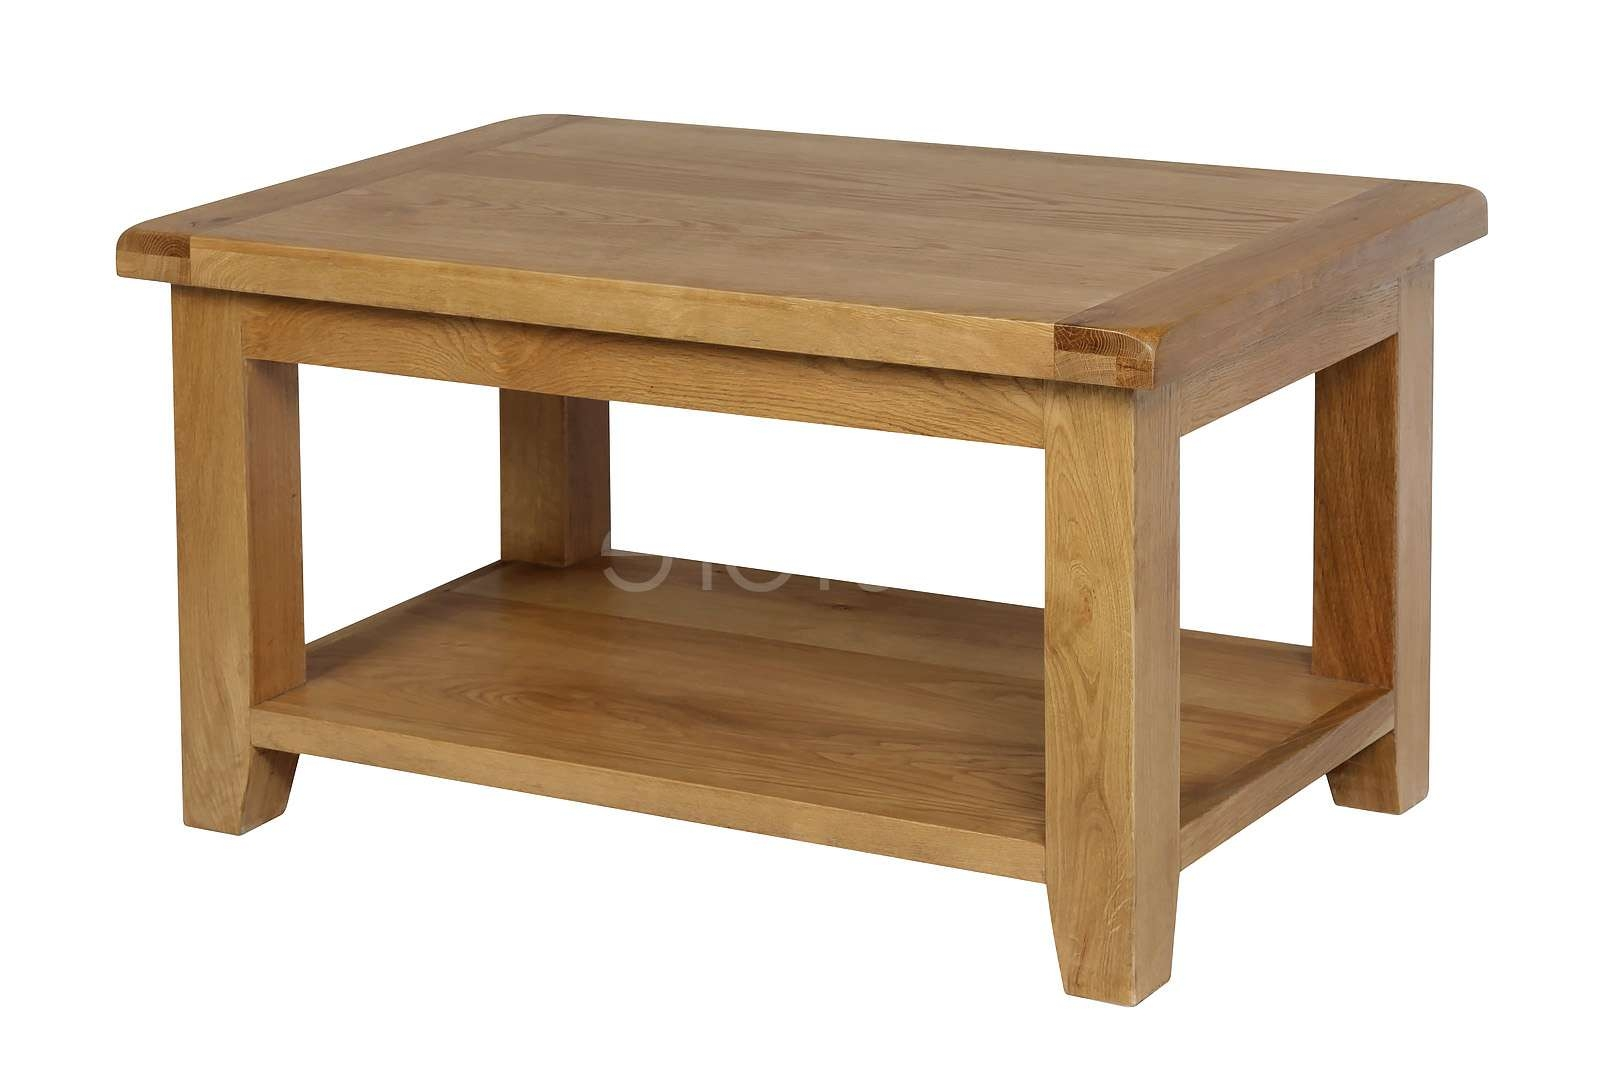 Most Recent Small Oak Coffee Tables With Regard To Small Coffee Table (View 7 of 20)